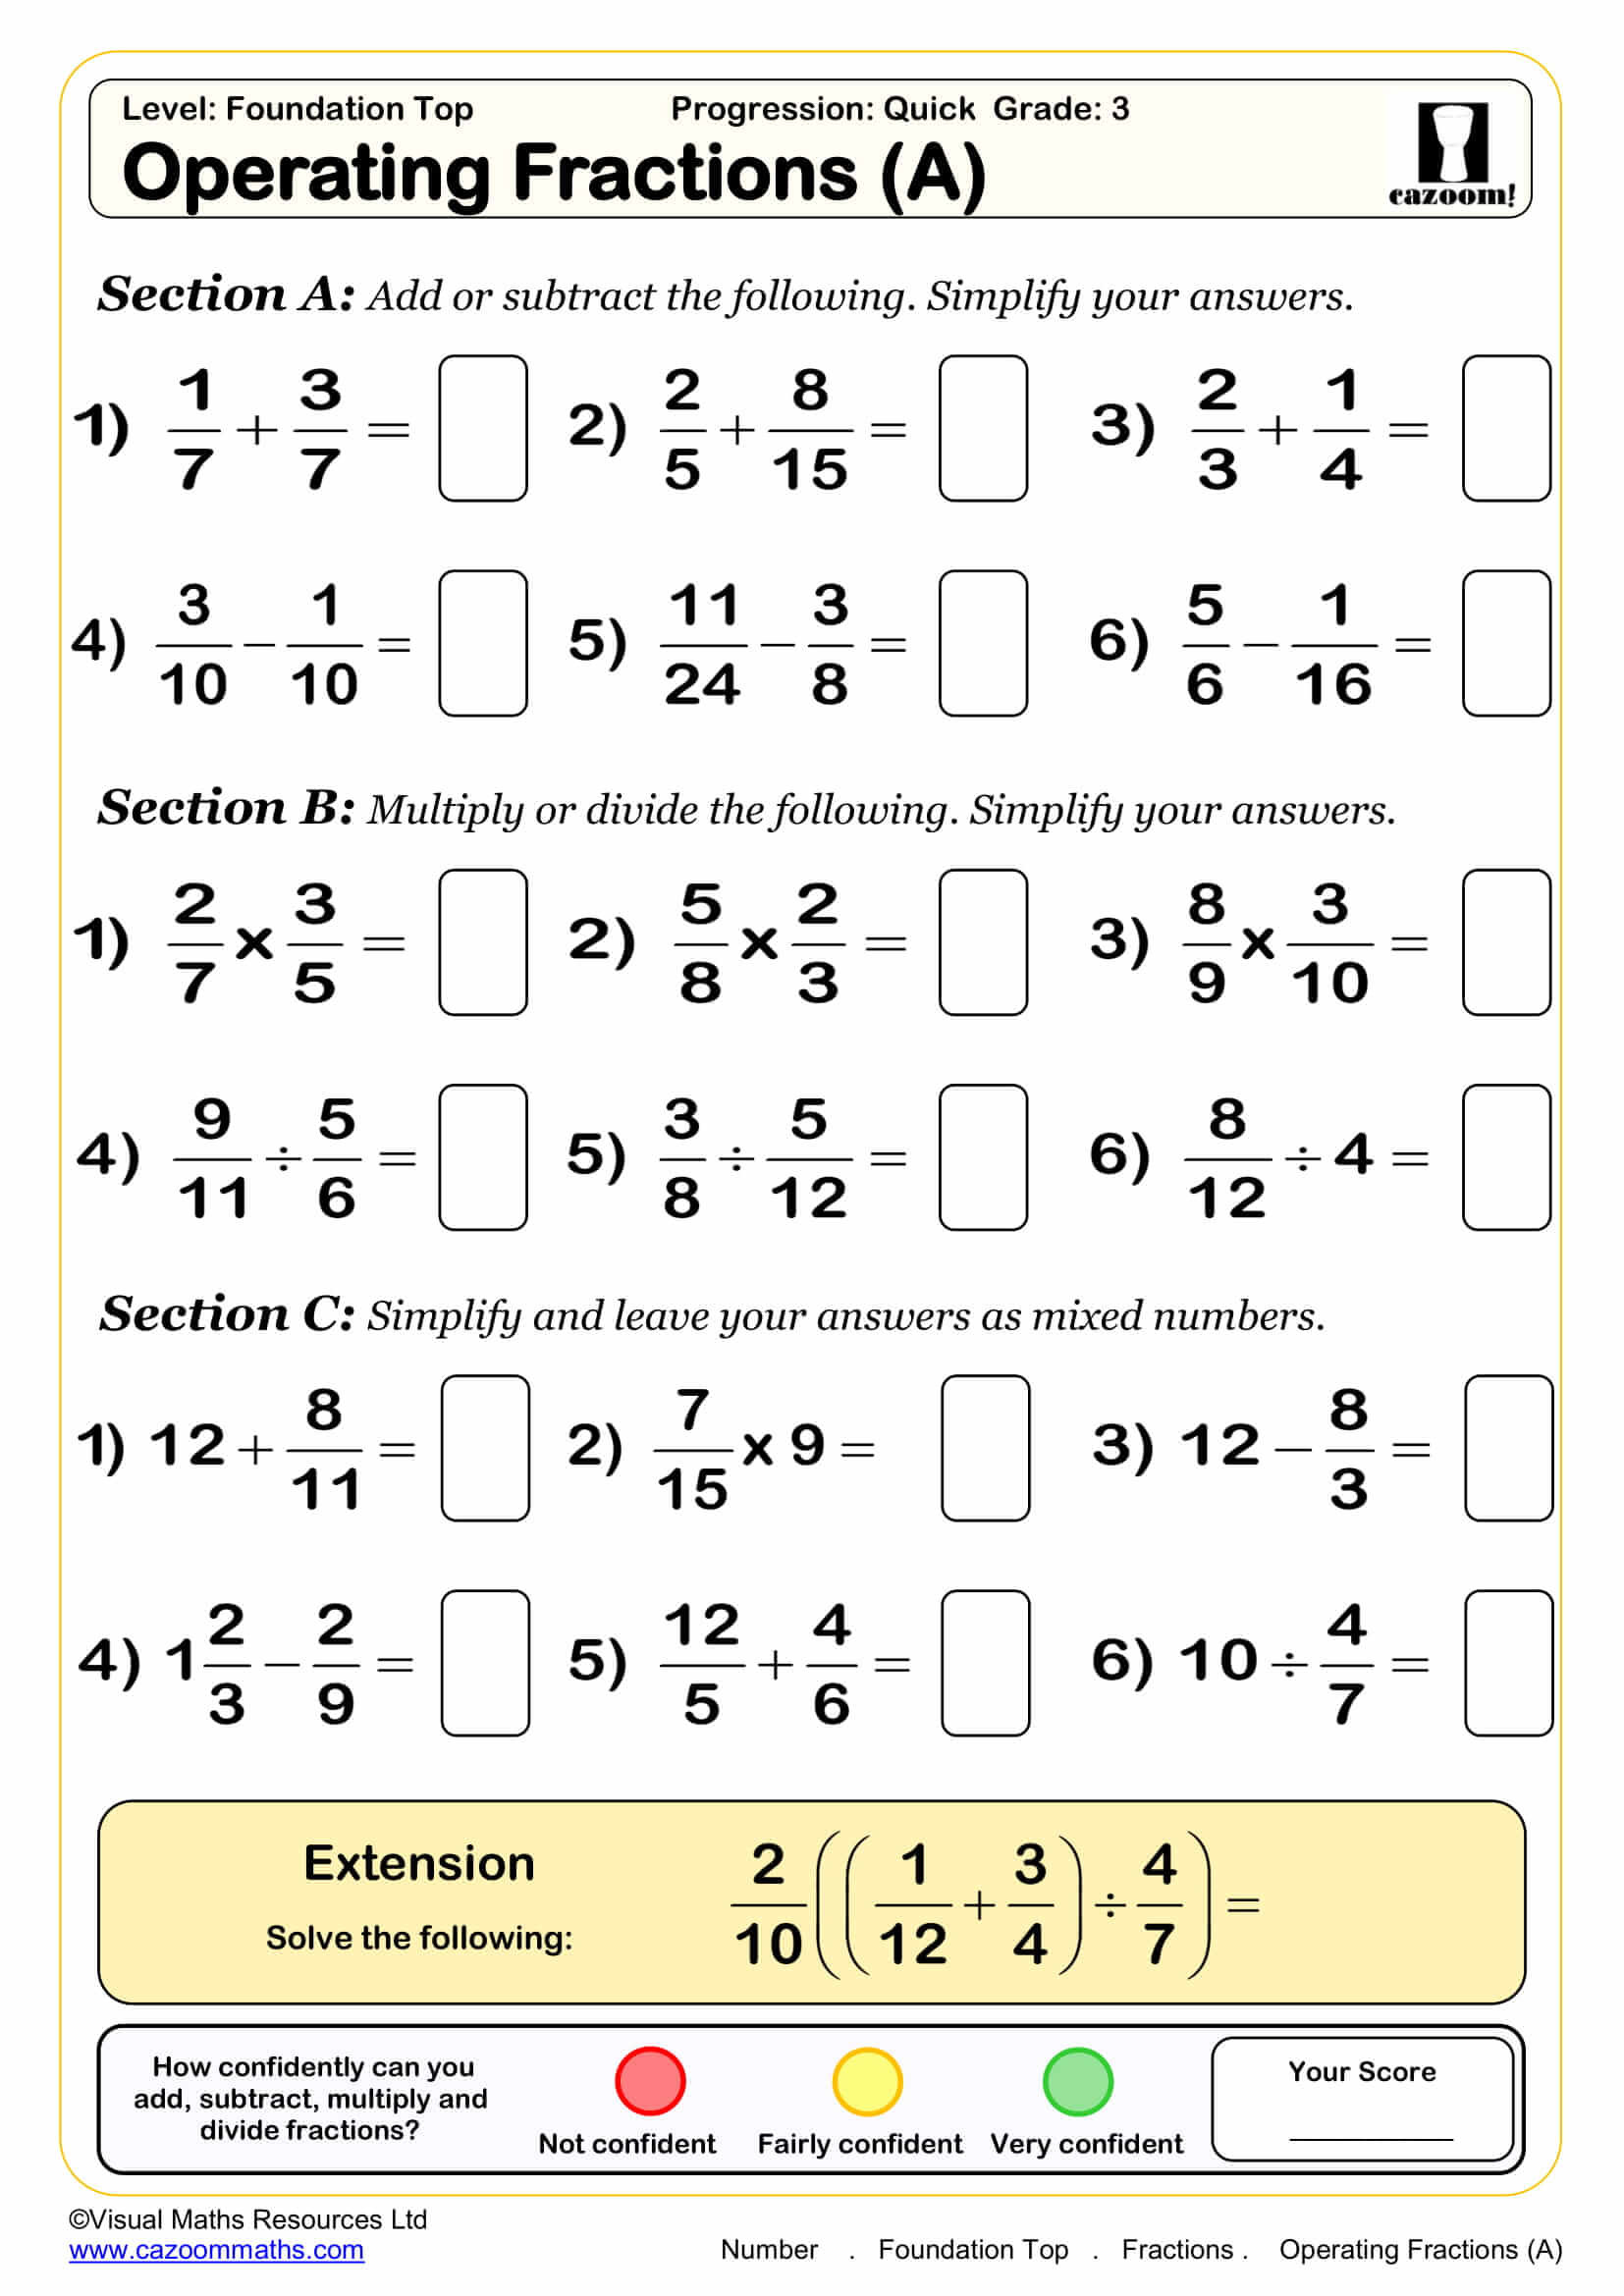 Adding Fractions Worksheet Pdf Maths Worksheets Ks3 Ks4 Printable Pdf for Year Olds Number